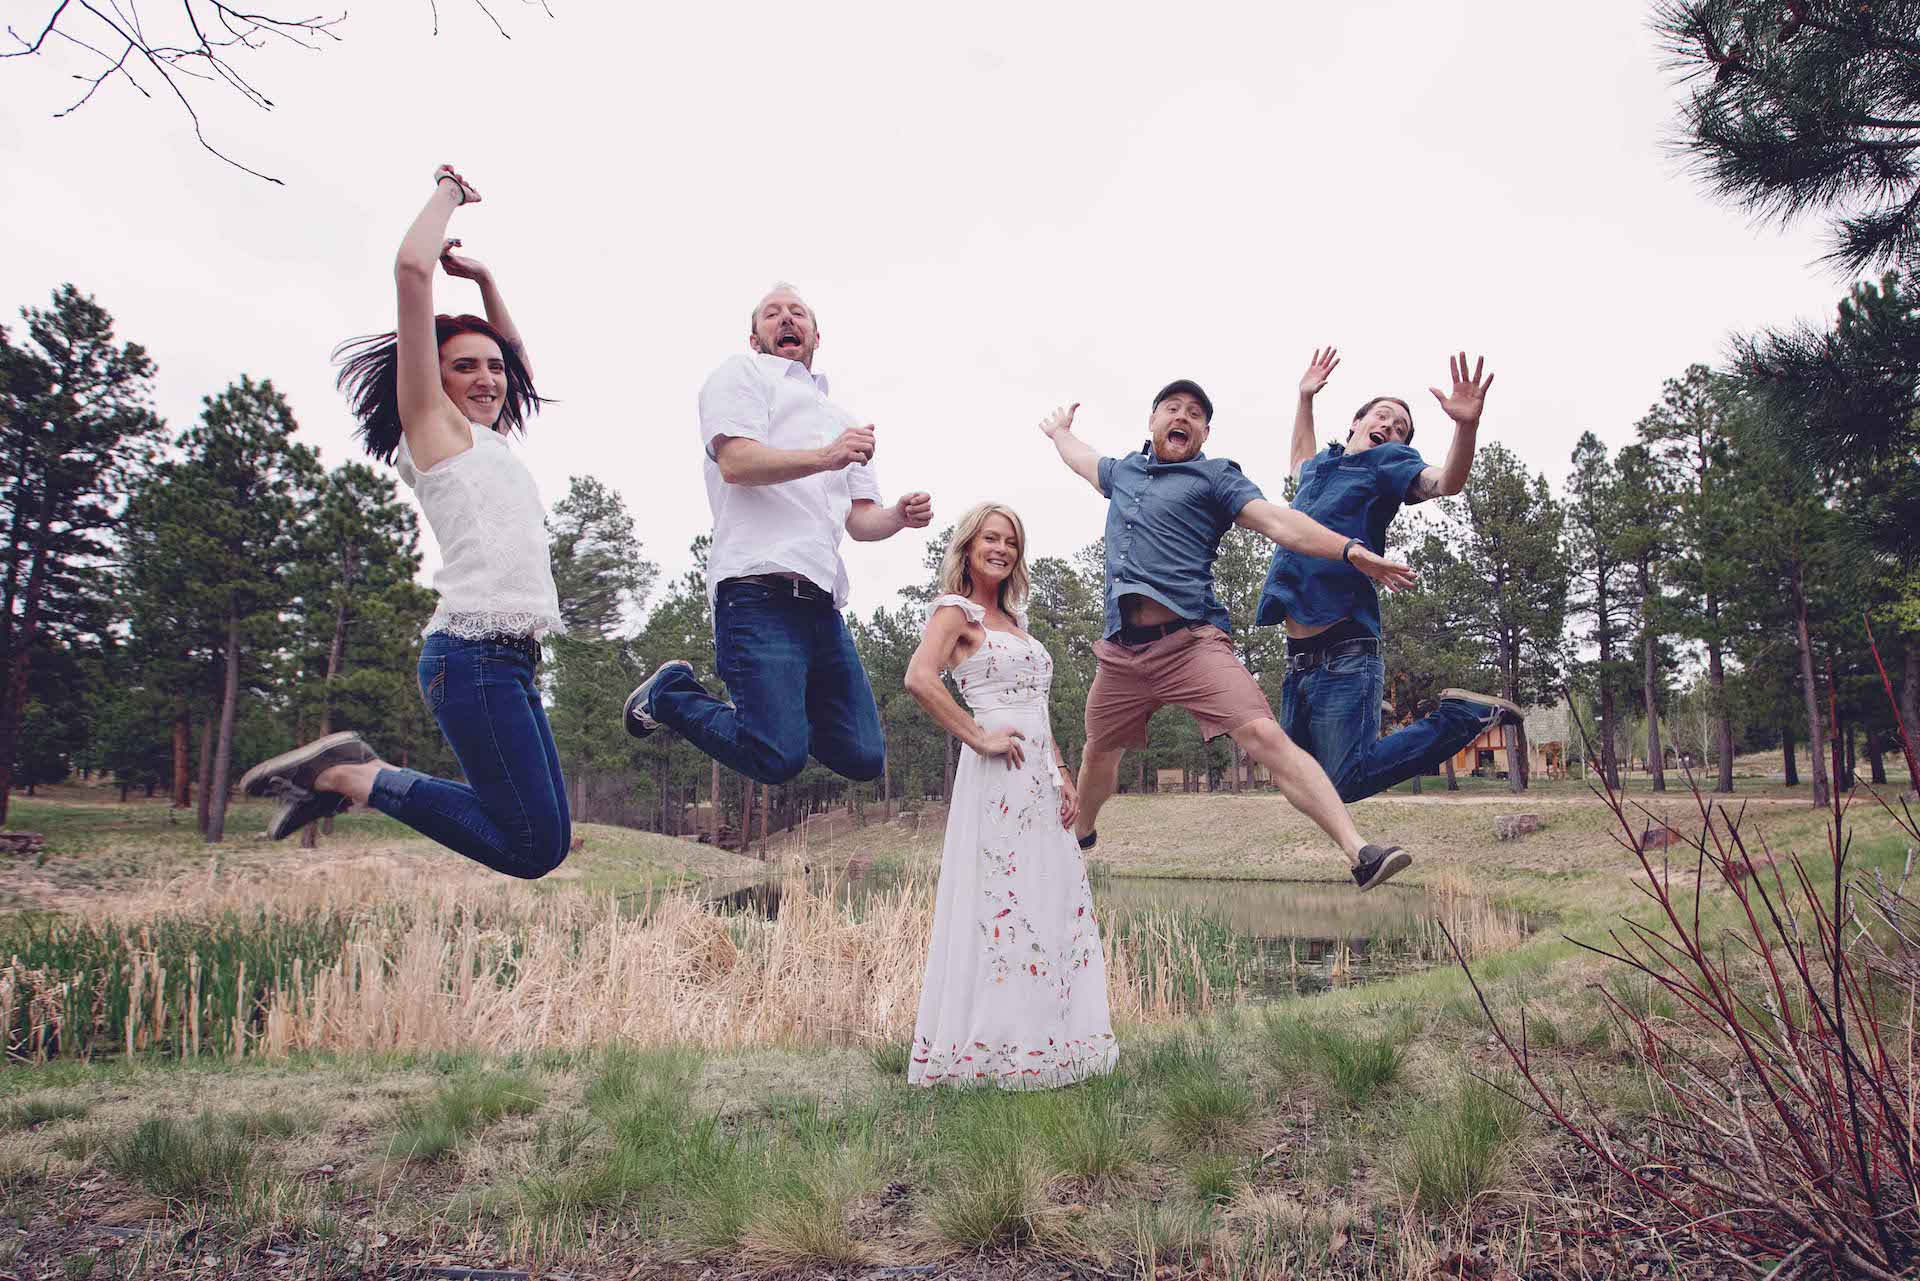 Family Photography Inspirations in Photography